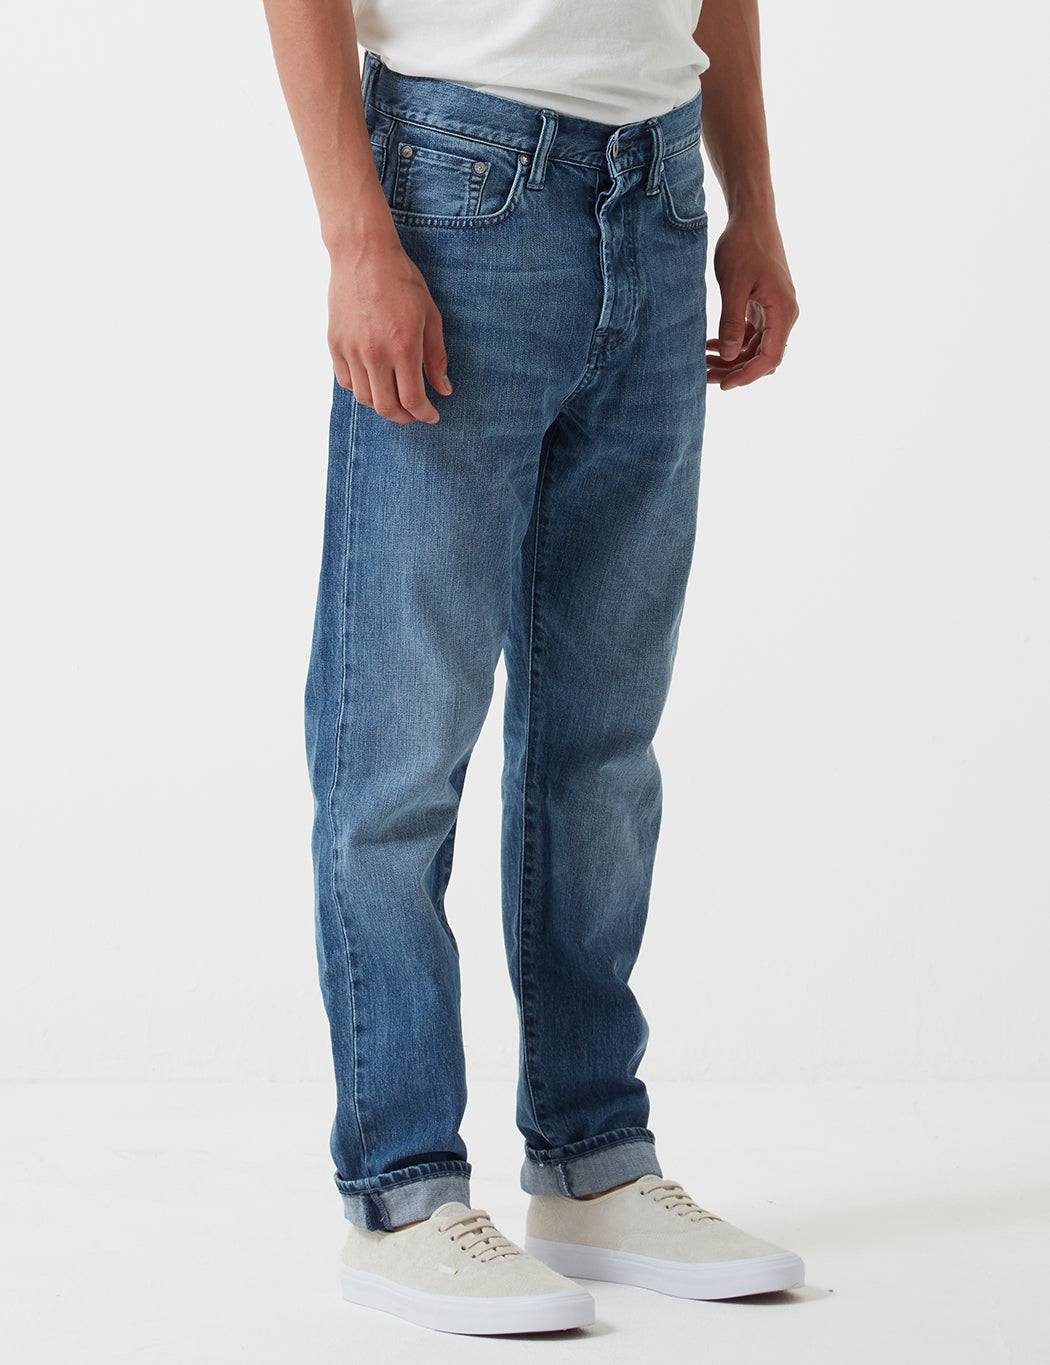 5a91430a ... Edwin ED-45 Kingston Blue Denim Jeans 12oz (Loose Tapered) - Blue Rinsed  ...